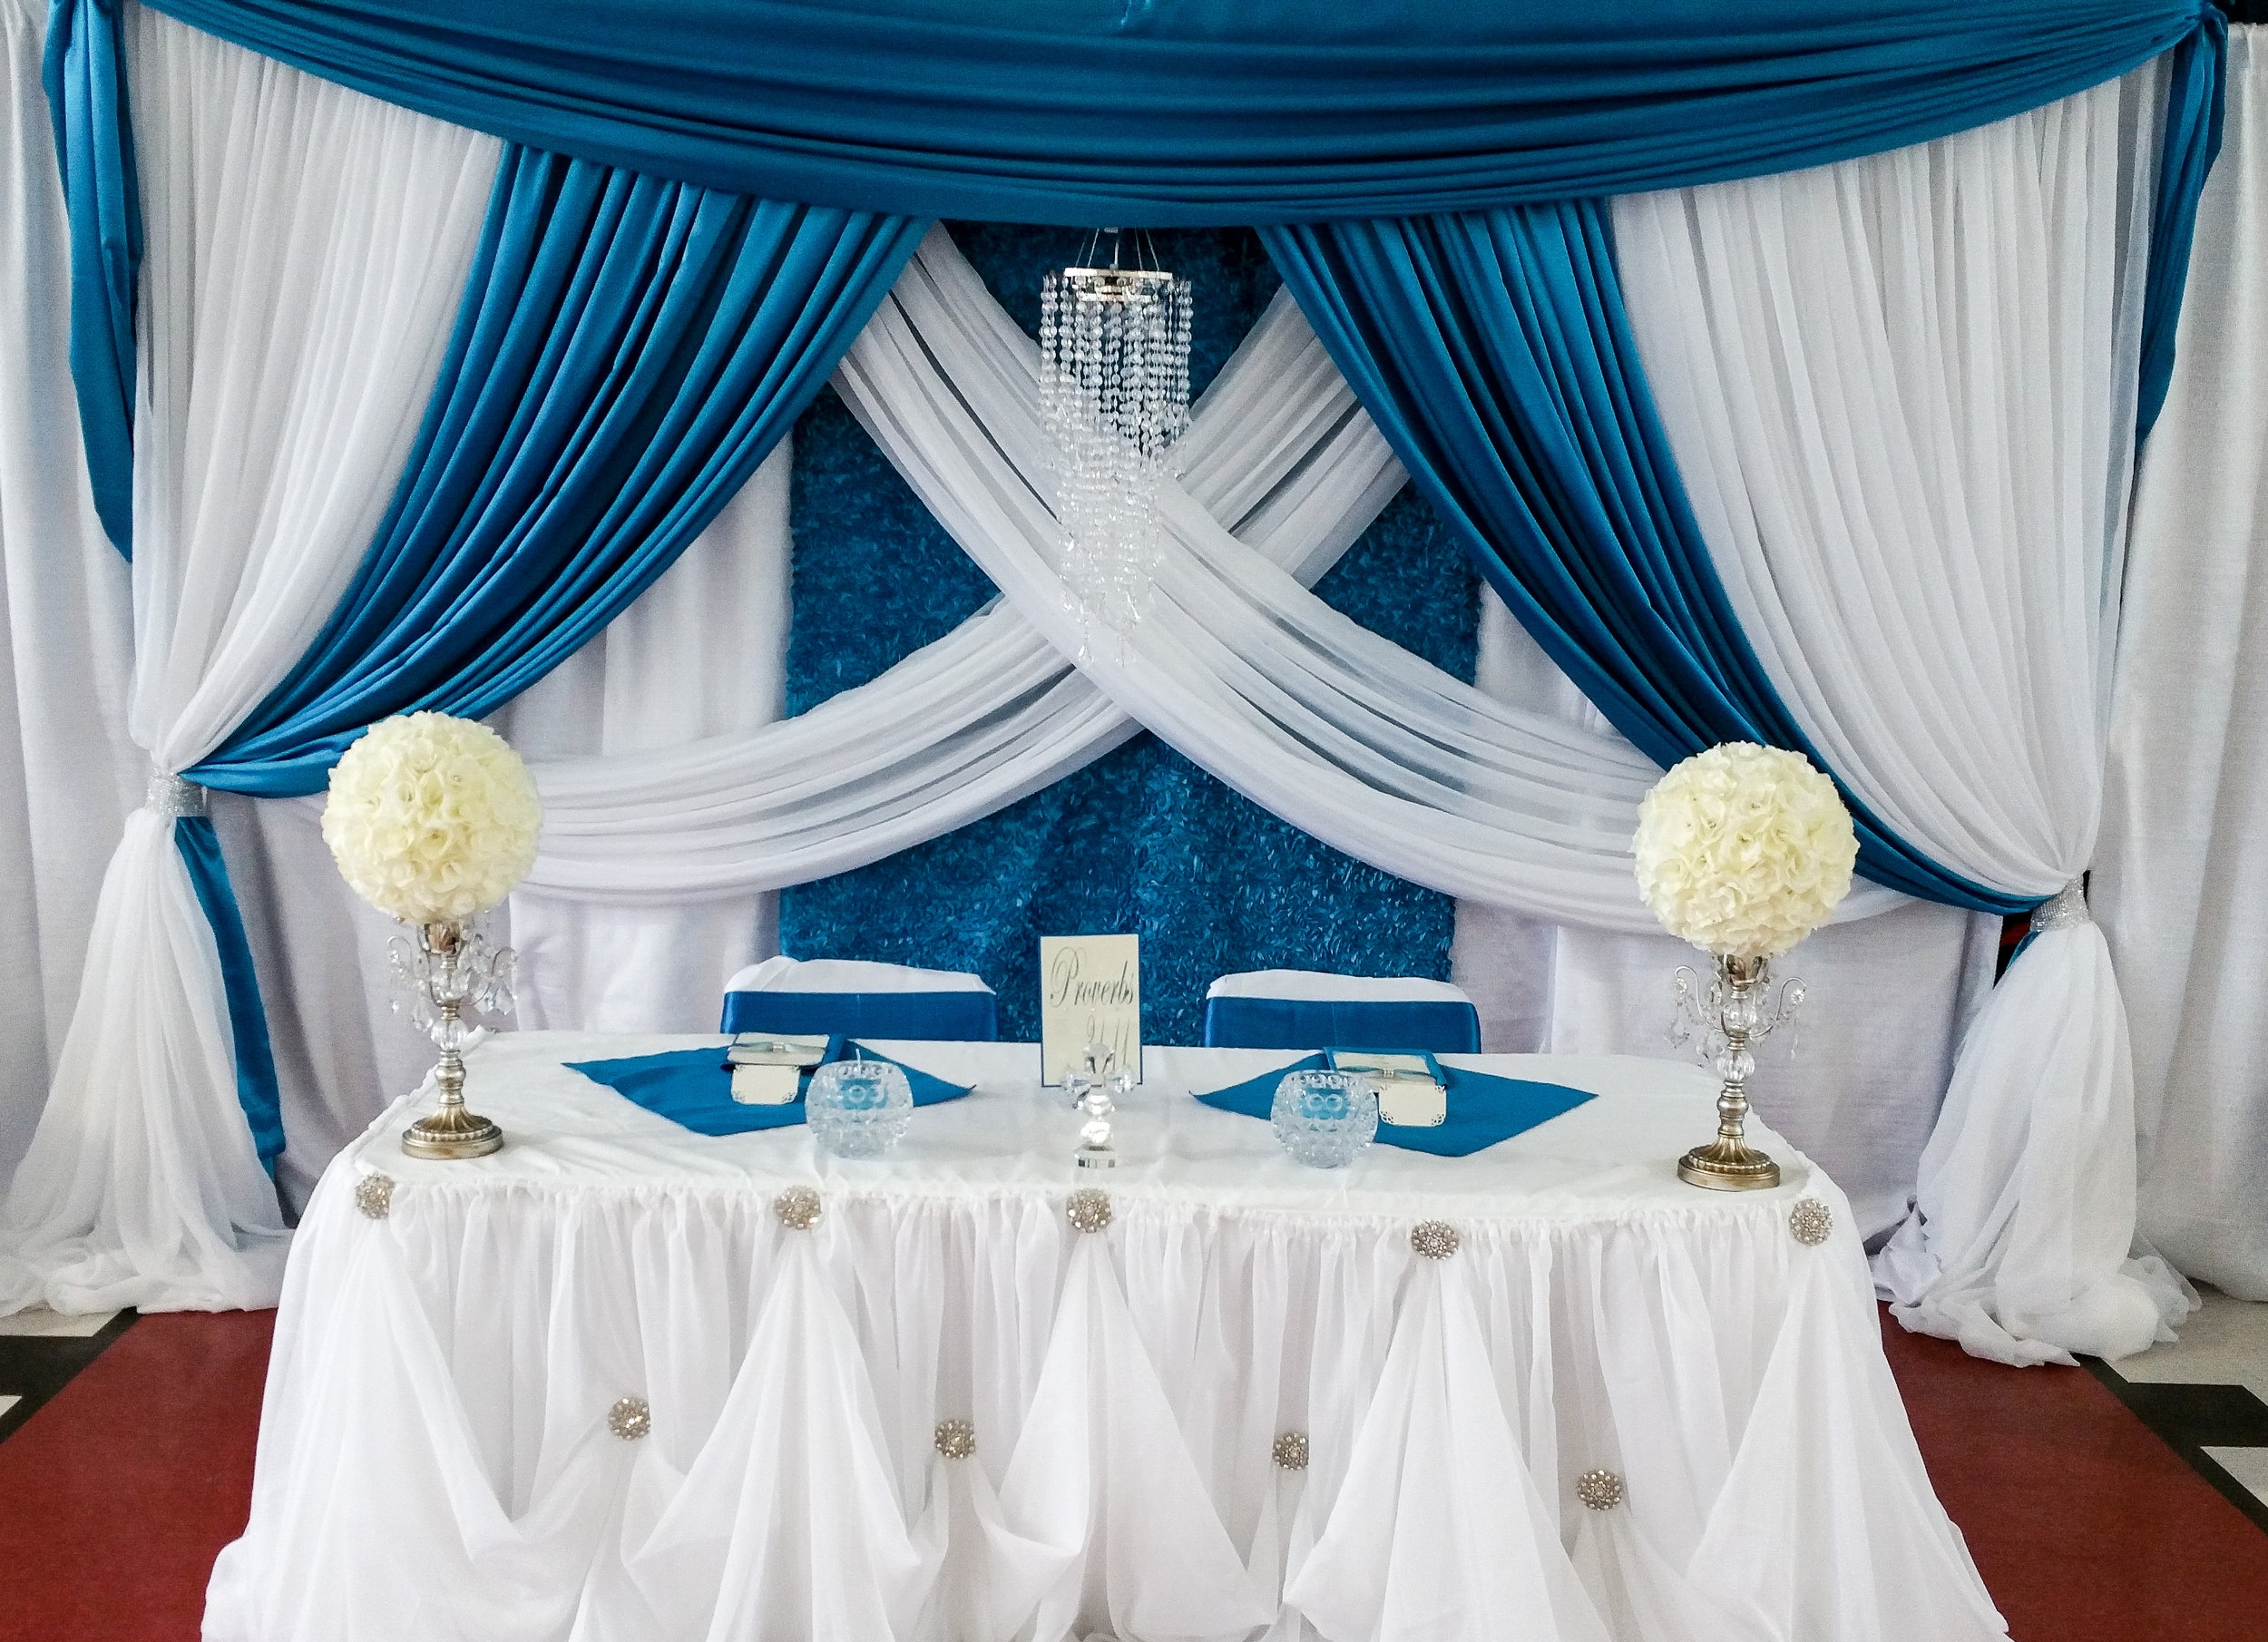 TMG (WEDDING COUPLE SETTING TABLE) | PHOTO BY ANDRE ALRIDGE